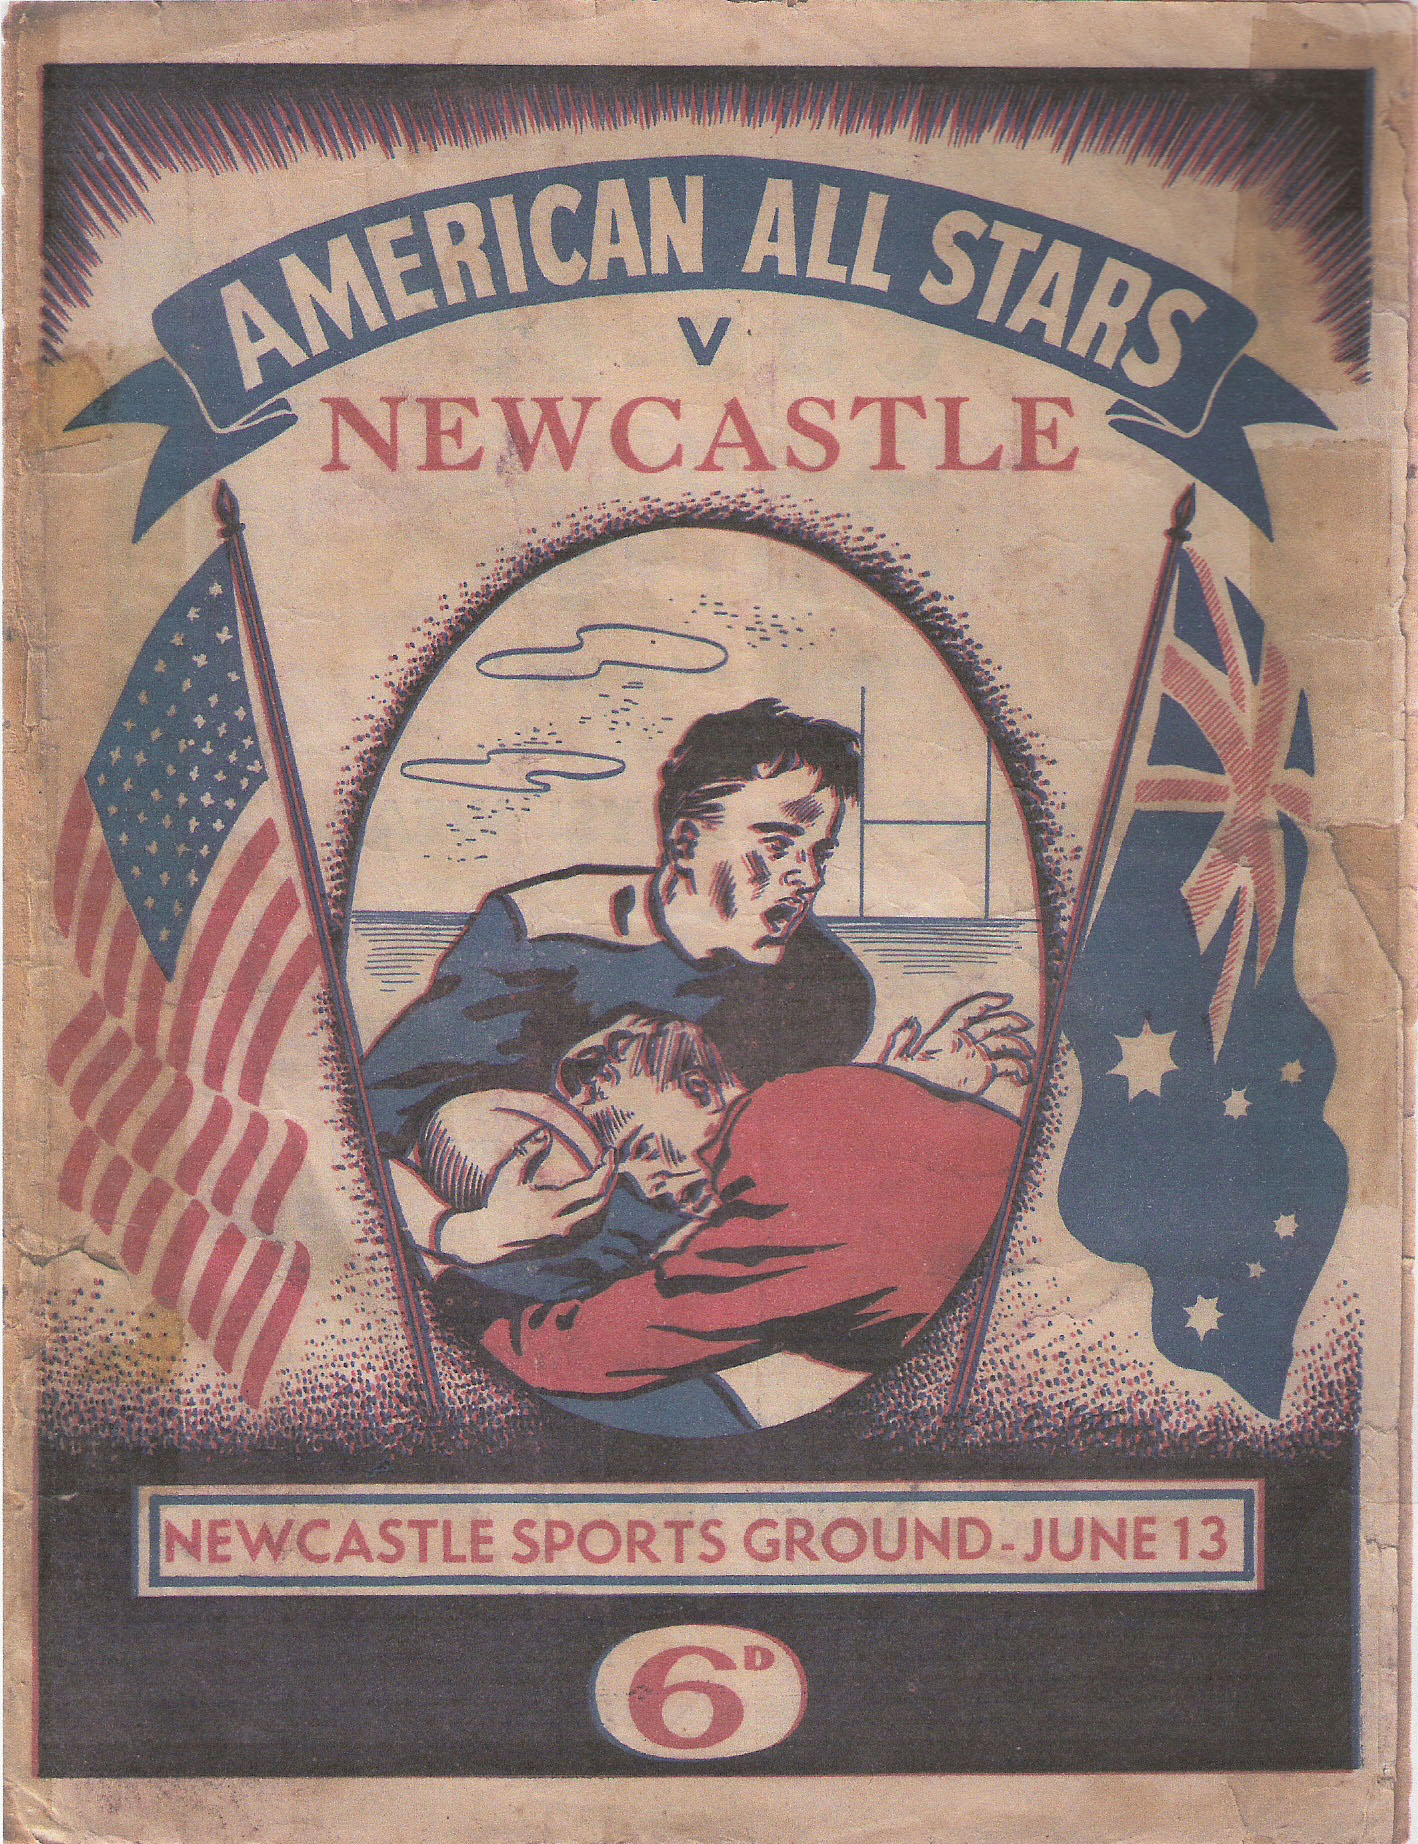 Match-day programme for Newcastle v American All Stars (1953)